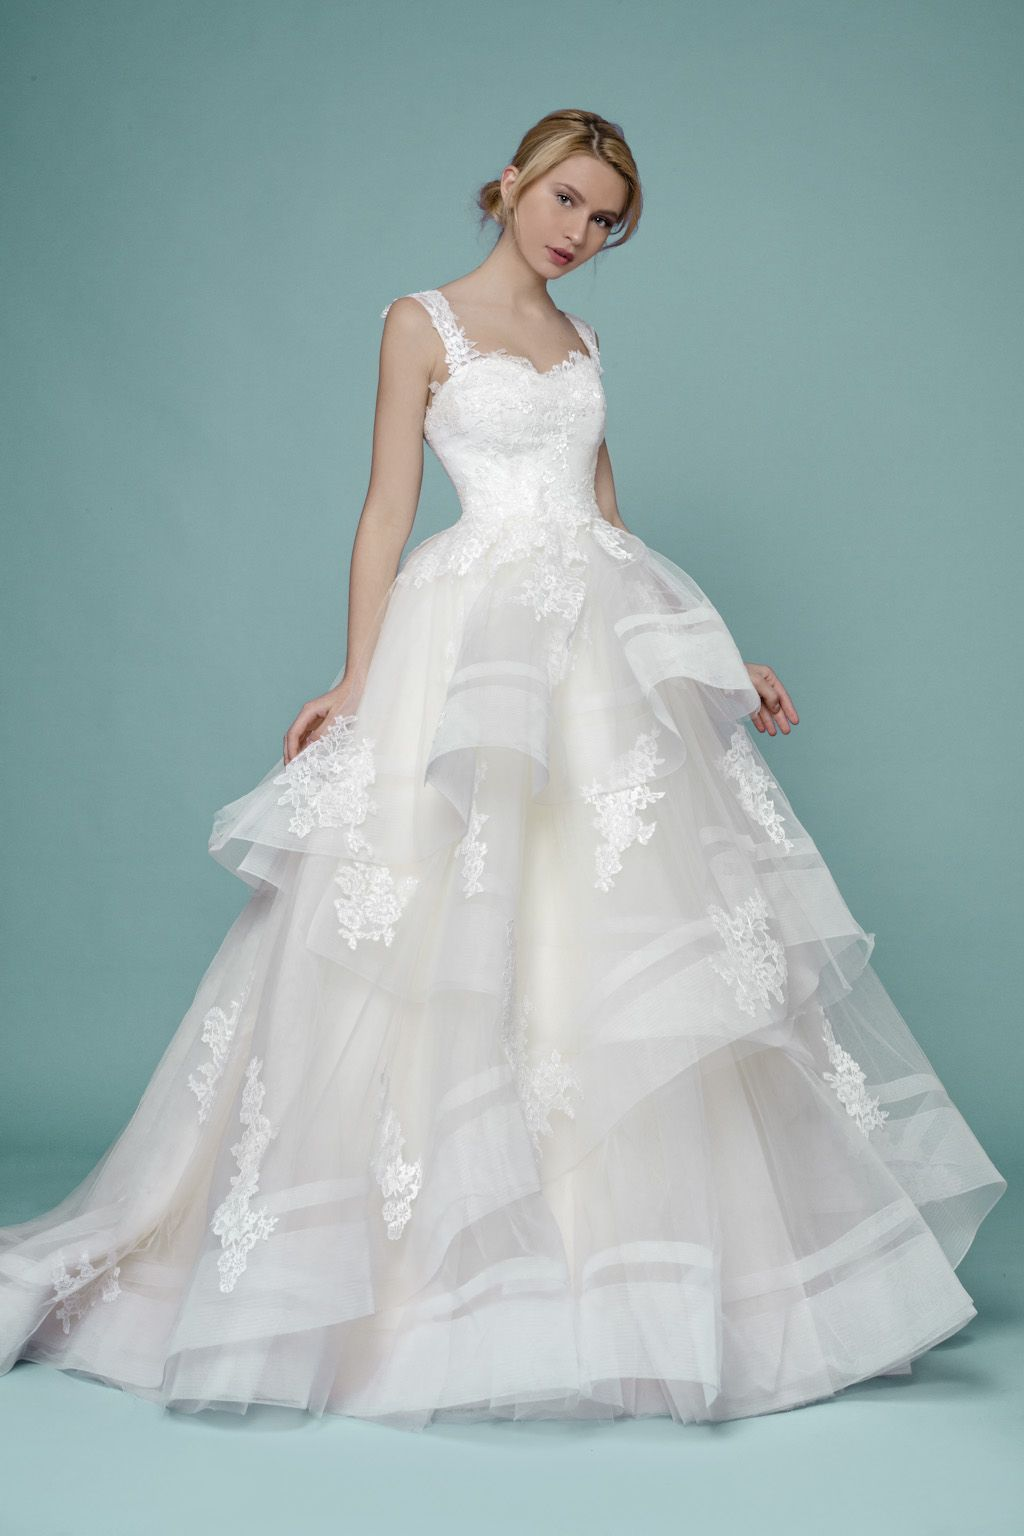 Beautiful Eve Of Milady Wedding Gown Pictures - Womens Dresses ...